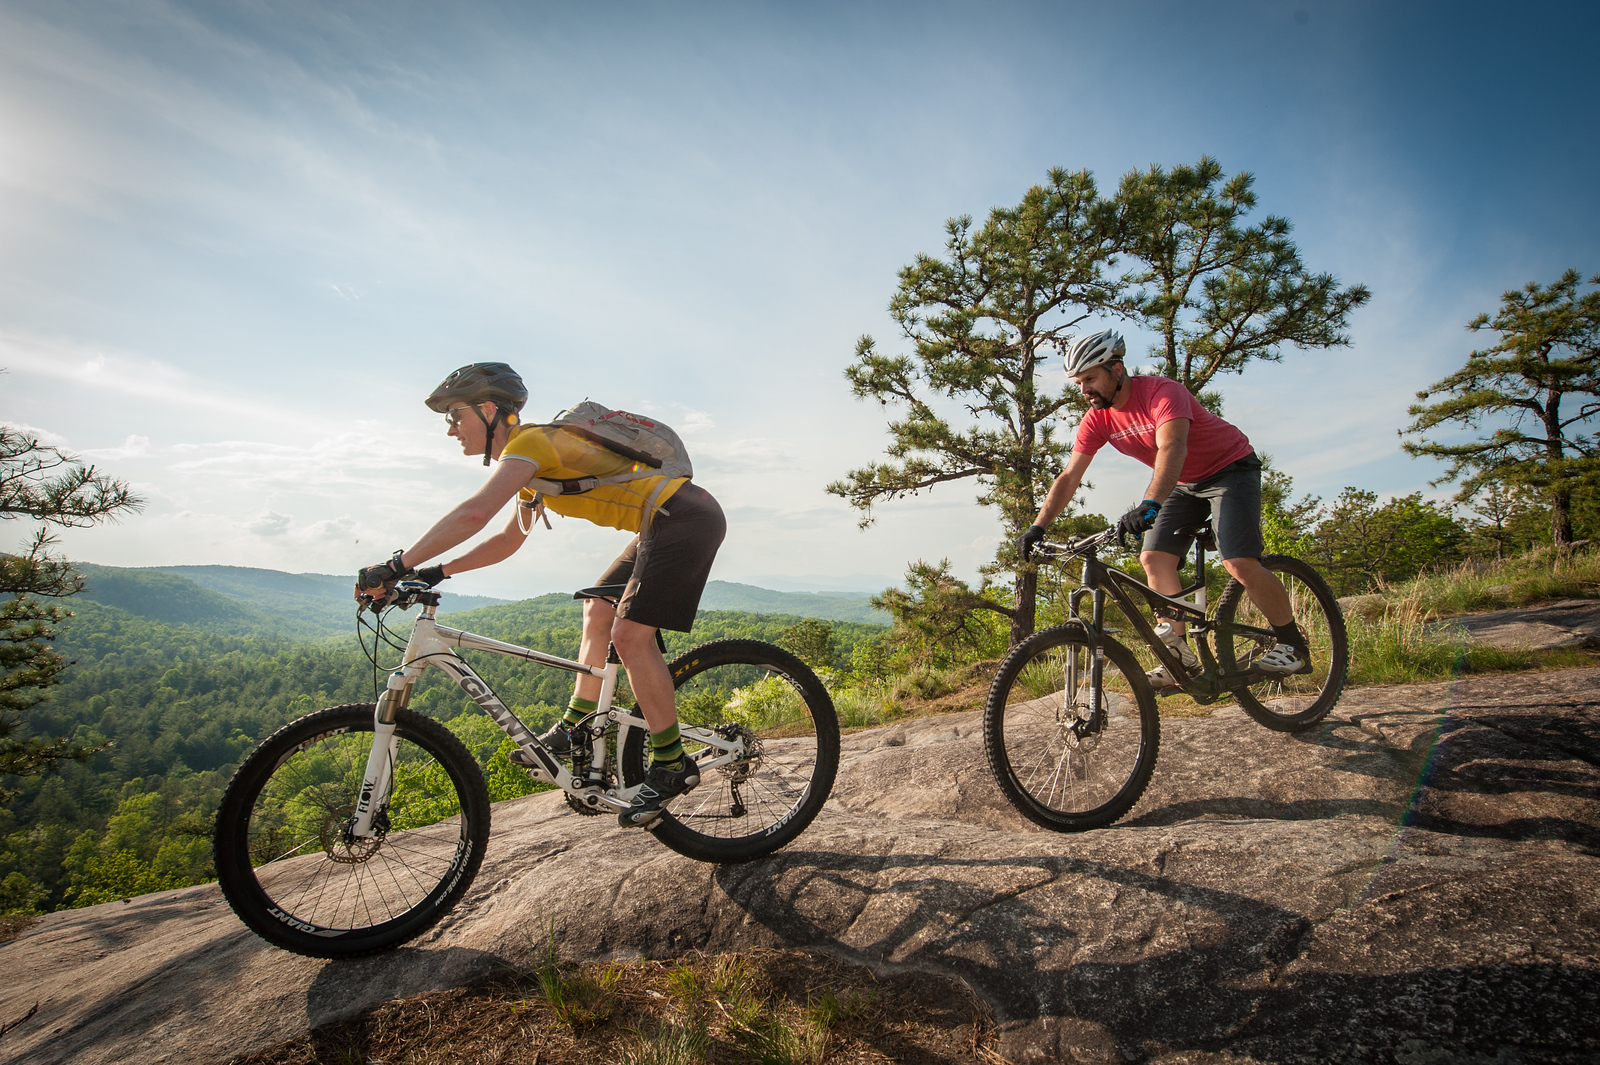 Mountain biking in Dupont State Forest outside of Brevard, North Carolina